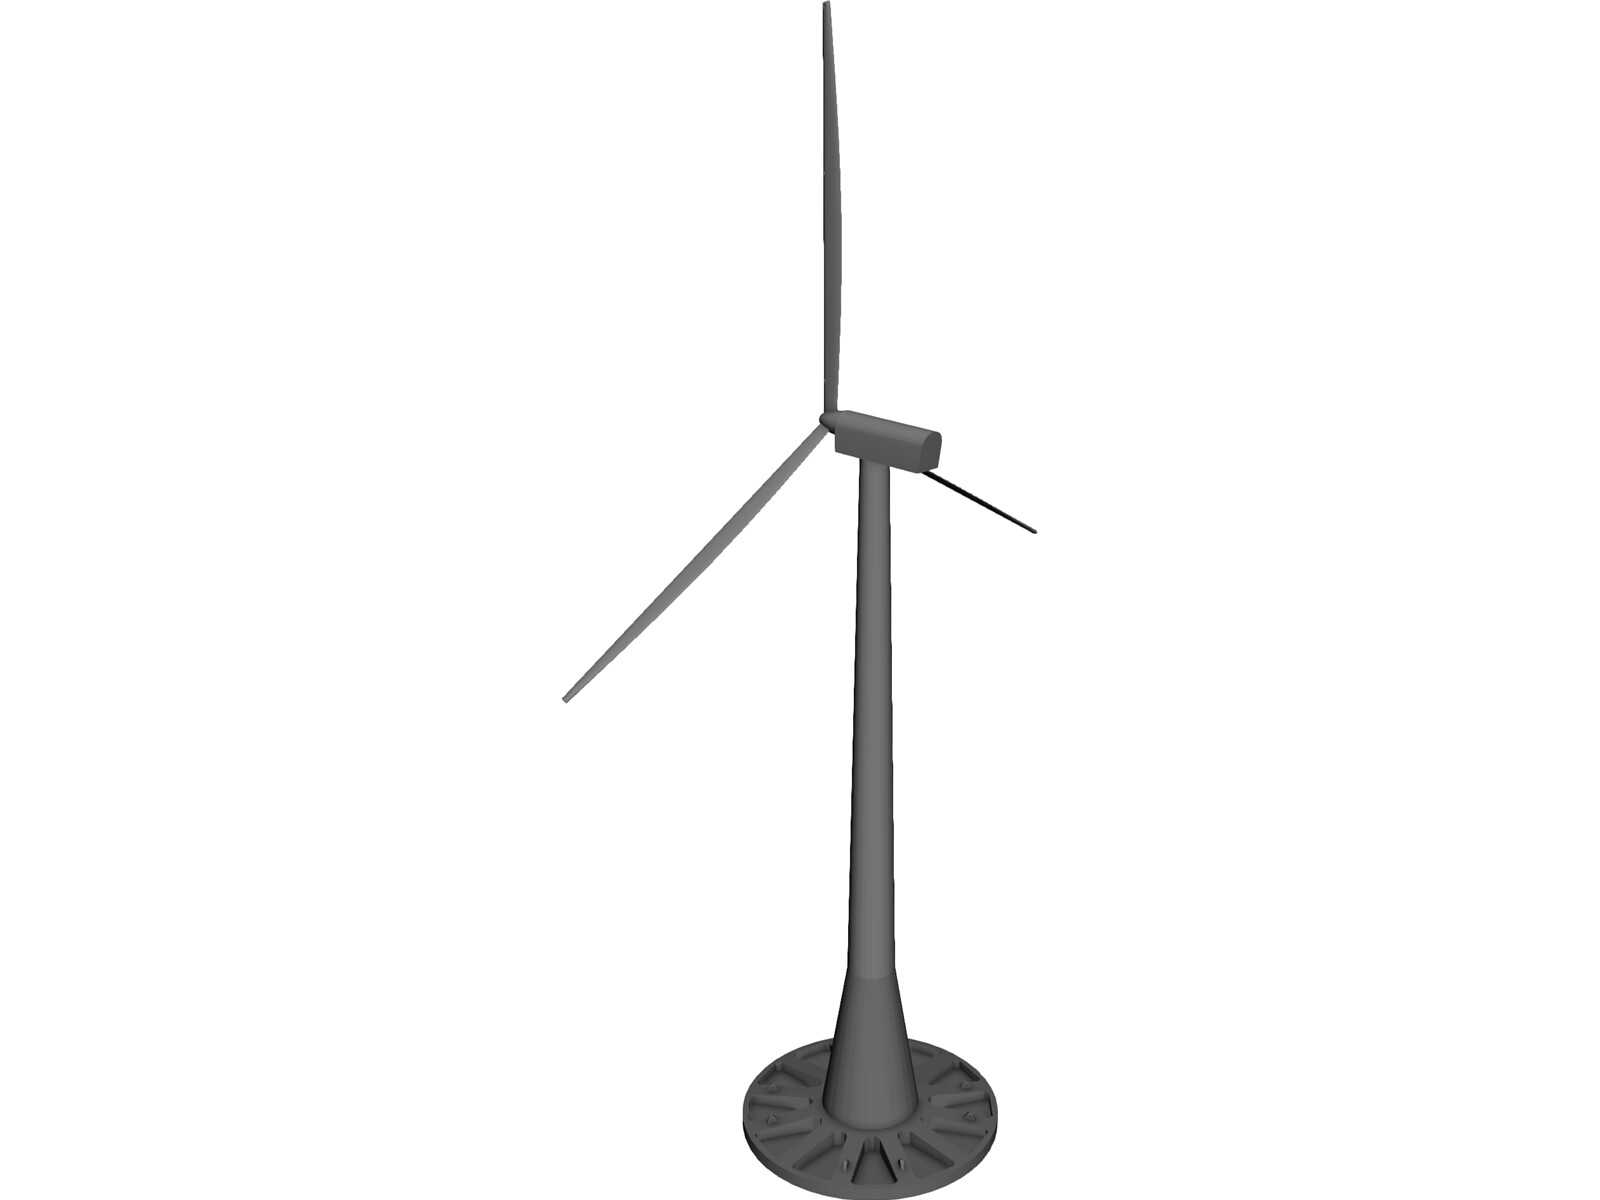 Offshore Windmill 3D Model - 3D CAD Browser